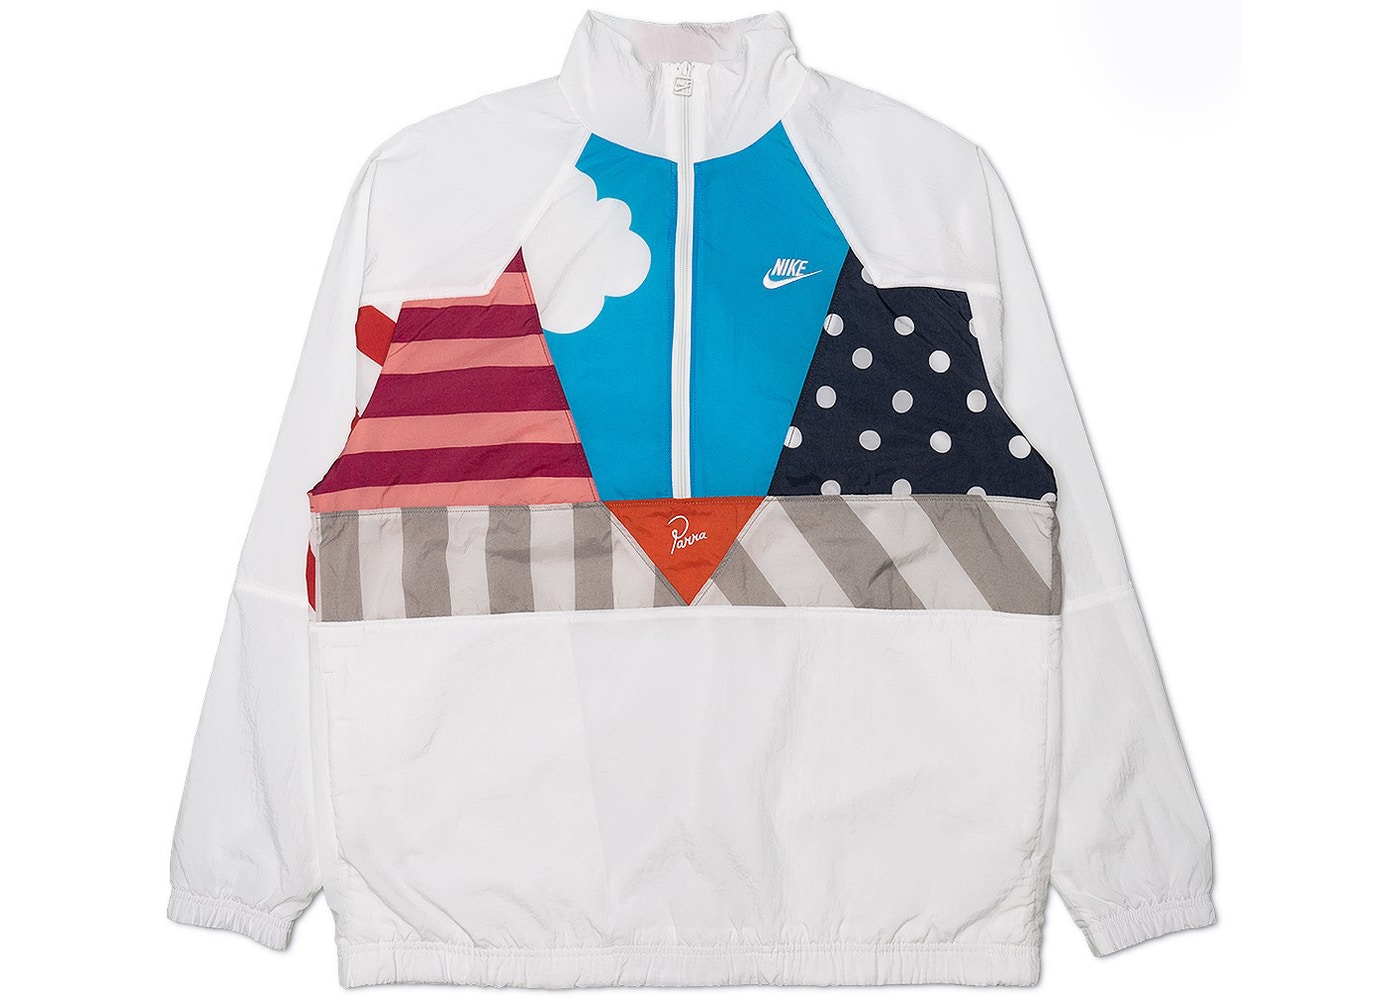 08e3ddd7aa0 Nike x Parra Woven Warm Up Tracksuit (Jacket and Pants Set) White - SS18